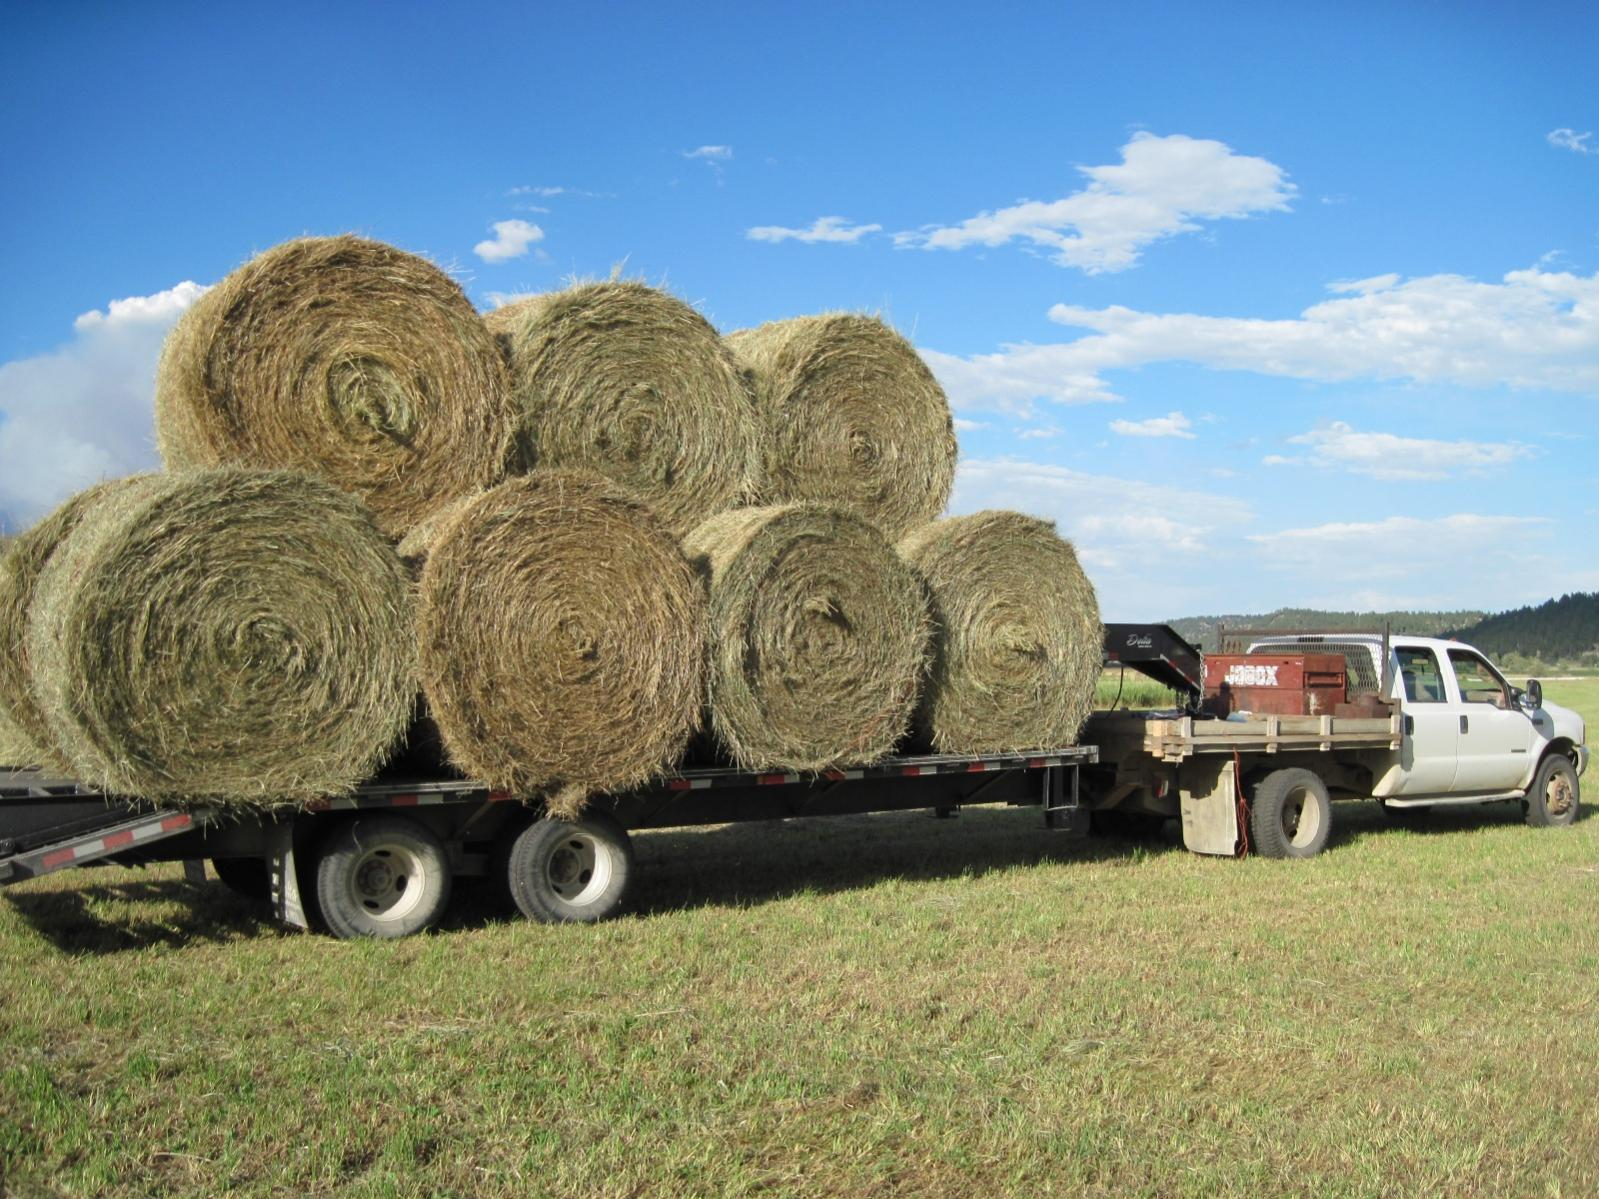 Show Us Your Truck-getting-hay-aug-21-2010-019-copy.jpg